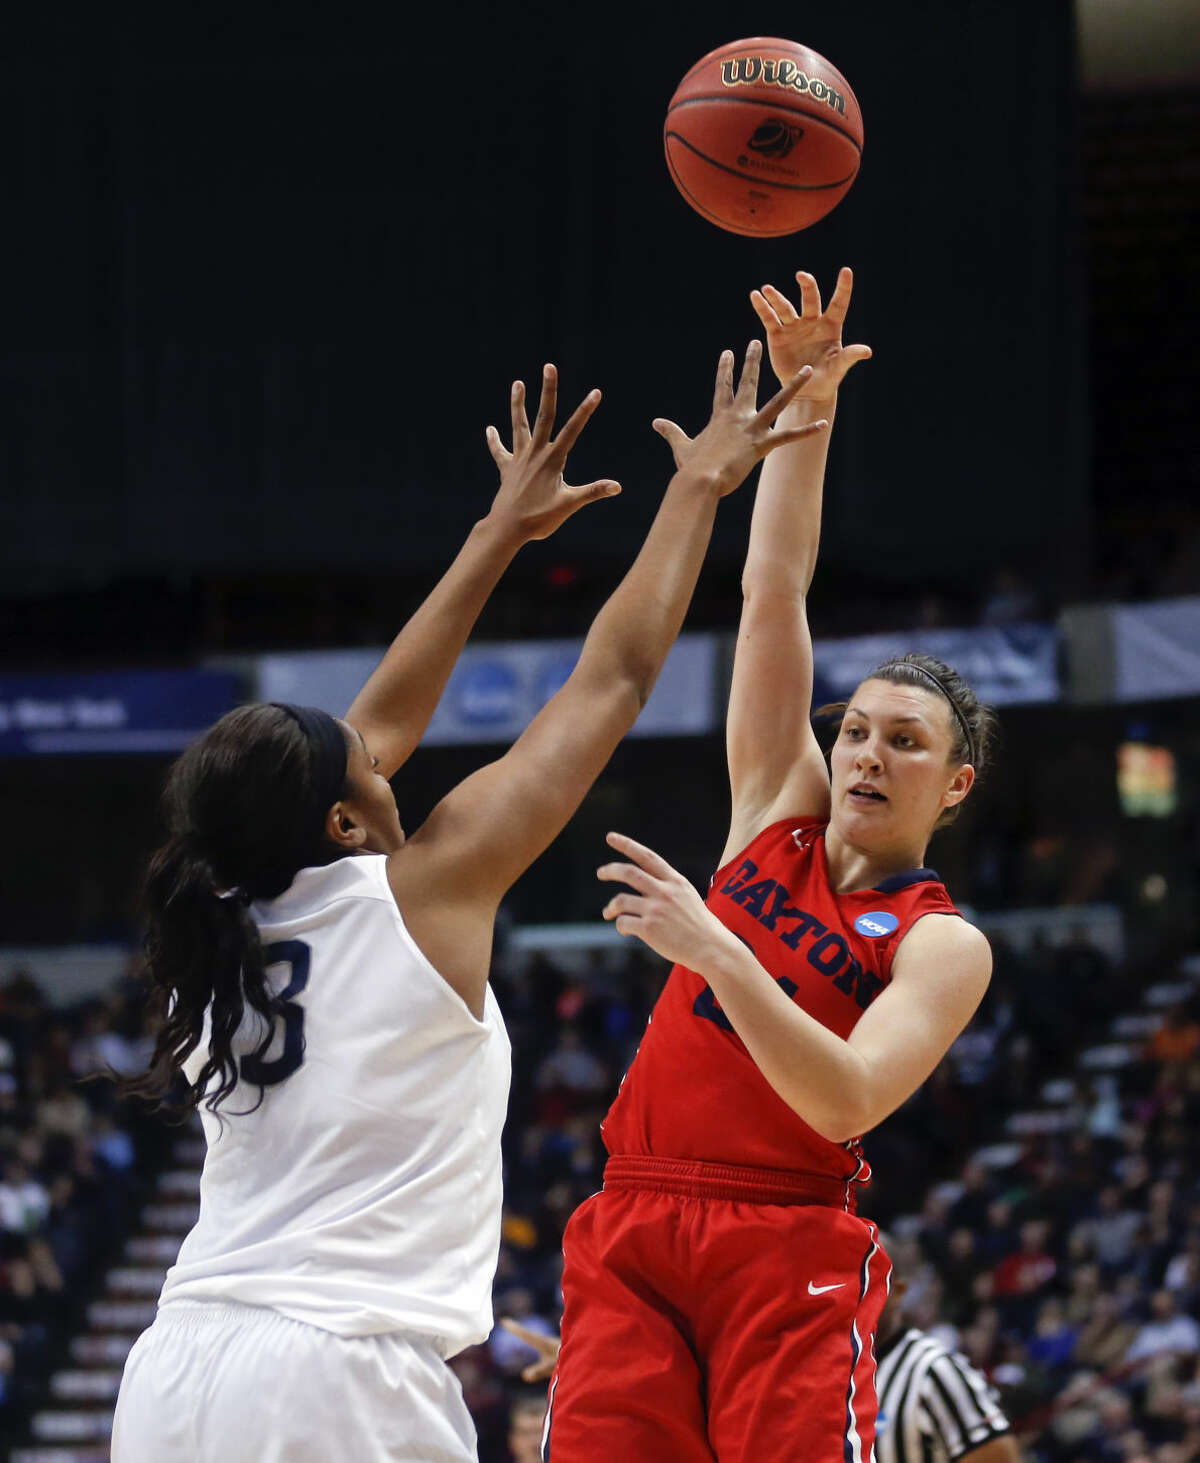 Dayton guard Andrea Hoover, right, passes over Connecticut forward Morgan Tuck during the second half of a regional final game in the NCAA women's college basketball tournament Monday, March 30, 2015, in Albany, N.Y. (AP Photo/Mike Groll)